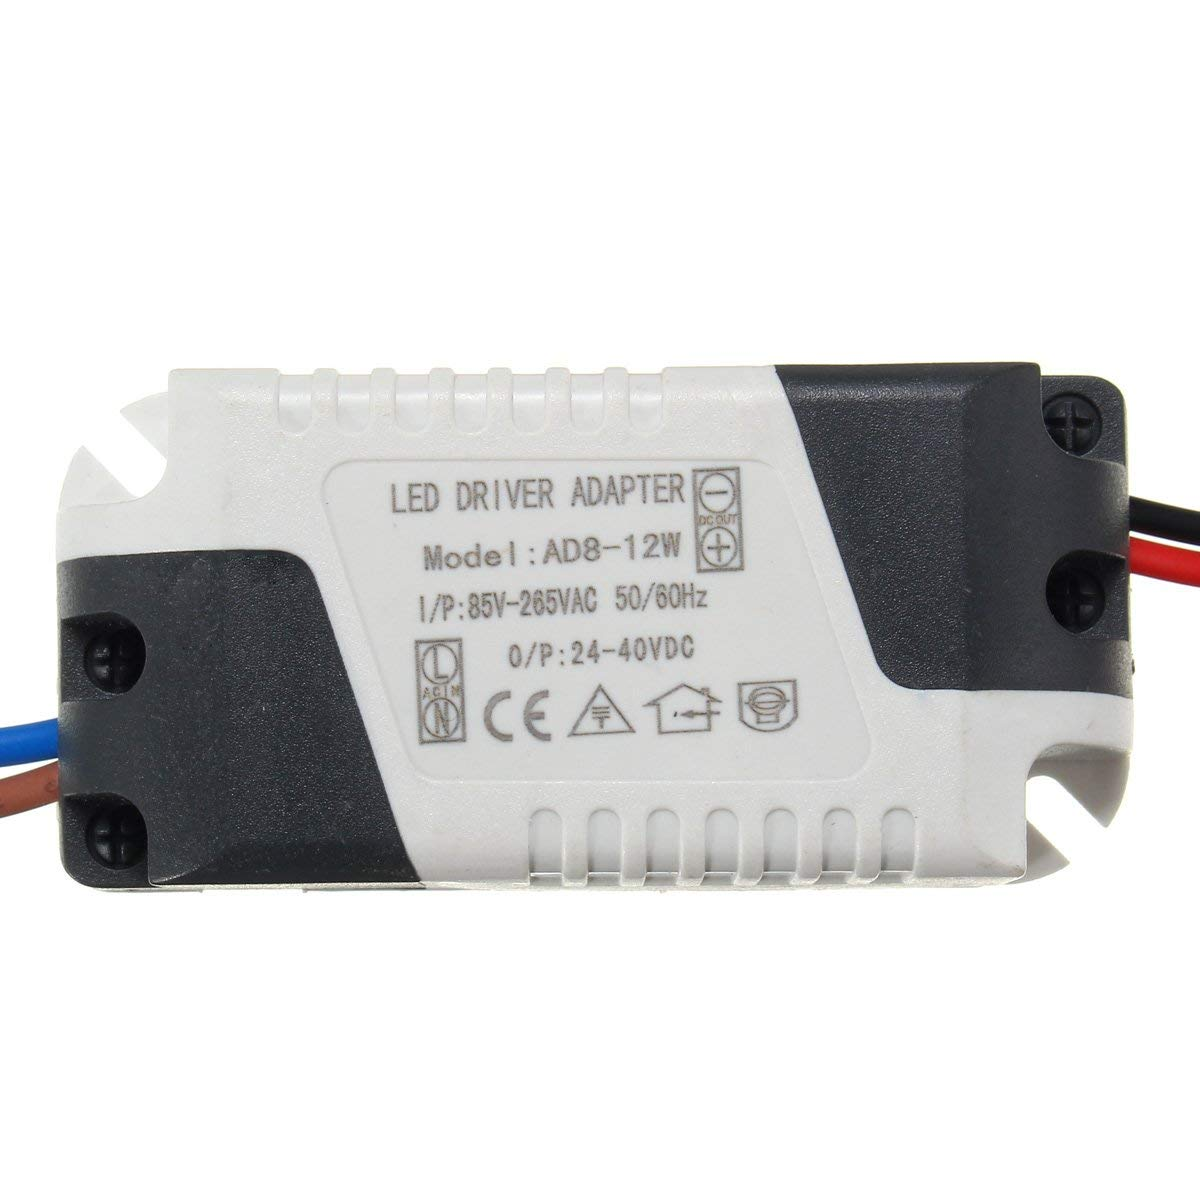 Wincom Dishman LIGHTING ACCESSORIES AC85-265V To DC24-40V 8-12W 300mA LED Light Lamp Driver Adapter Transformer Power Supply